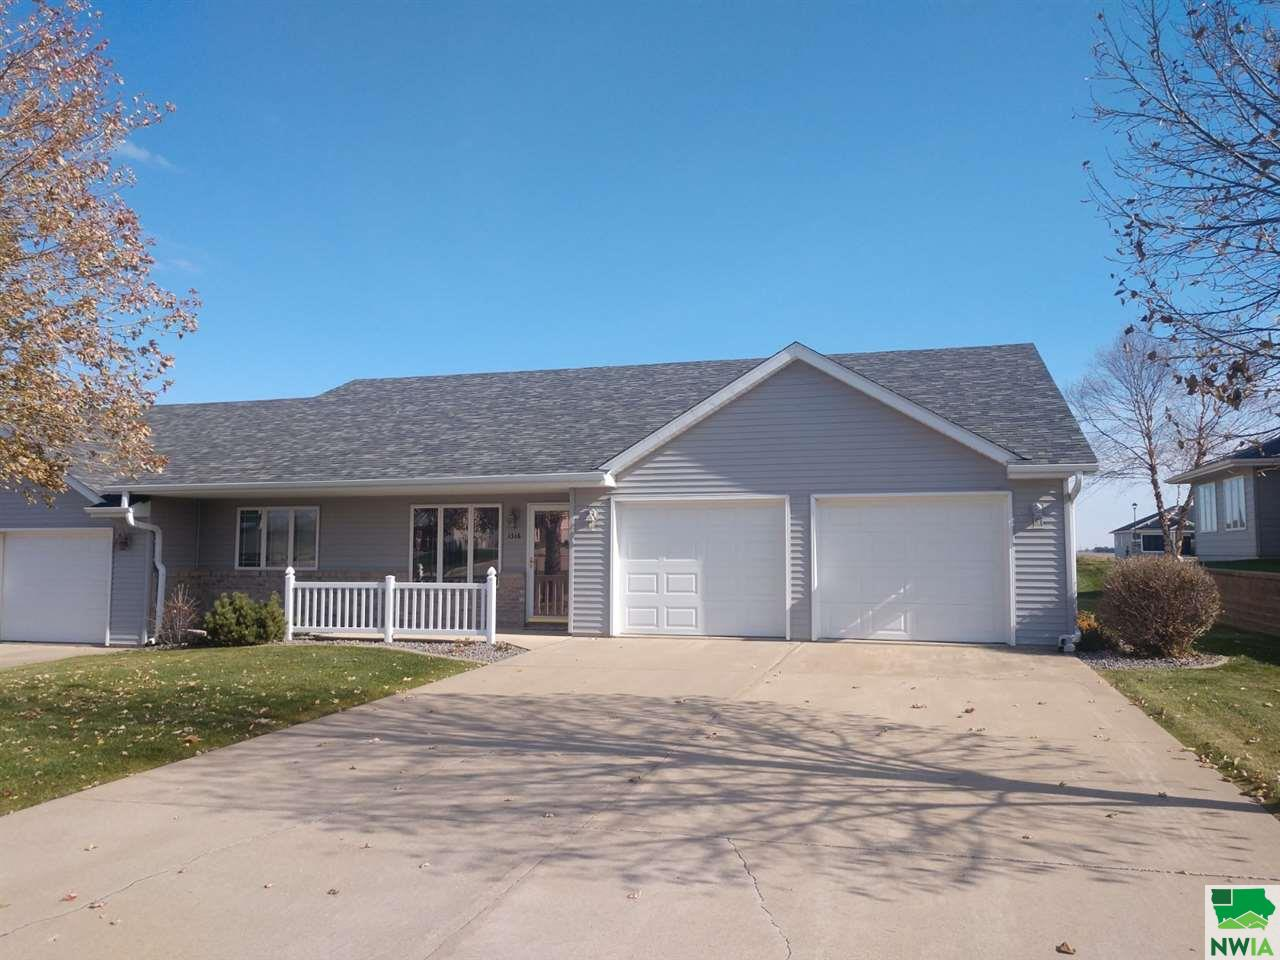 Property for sale at 1316 7th Ave Se, Sioux Center,  Iowa 51250